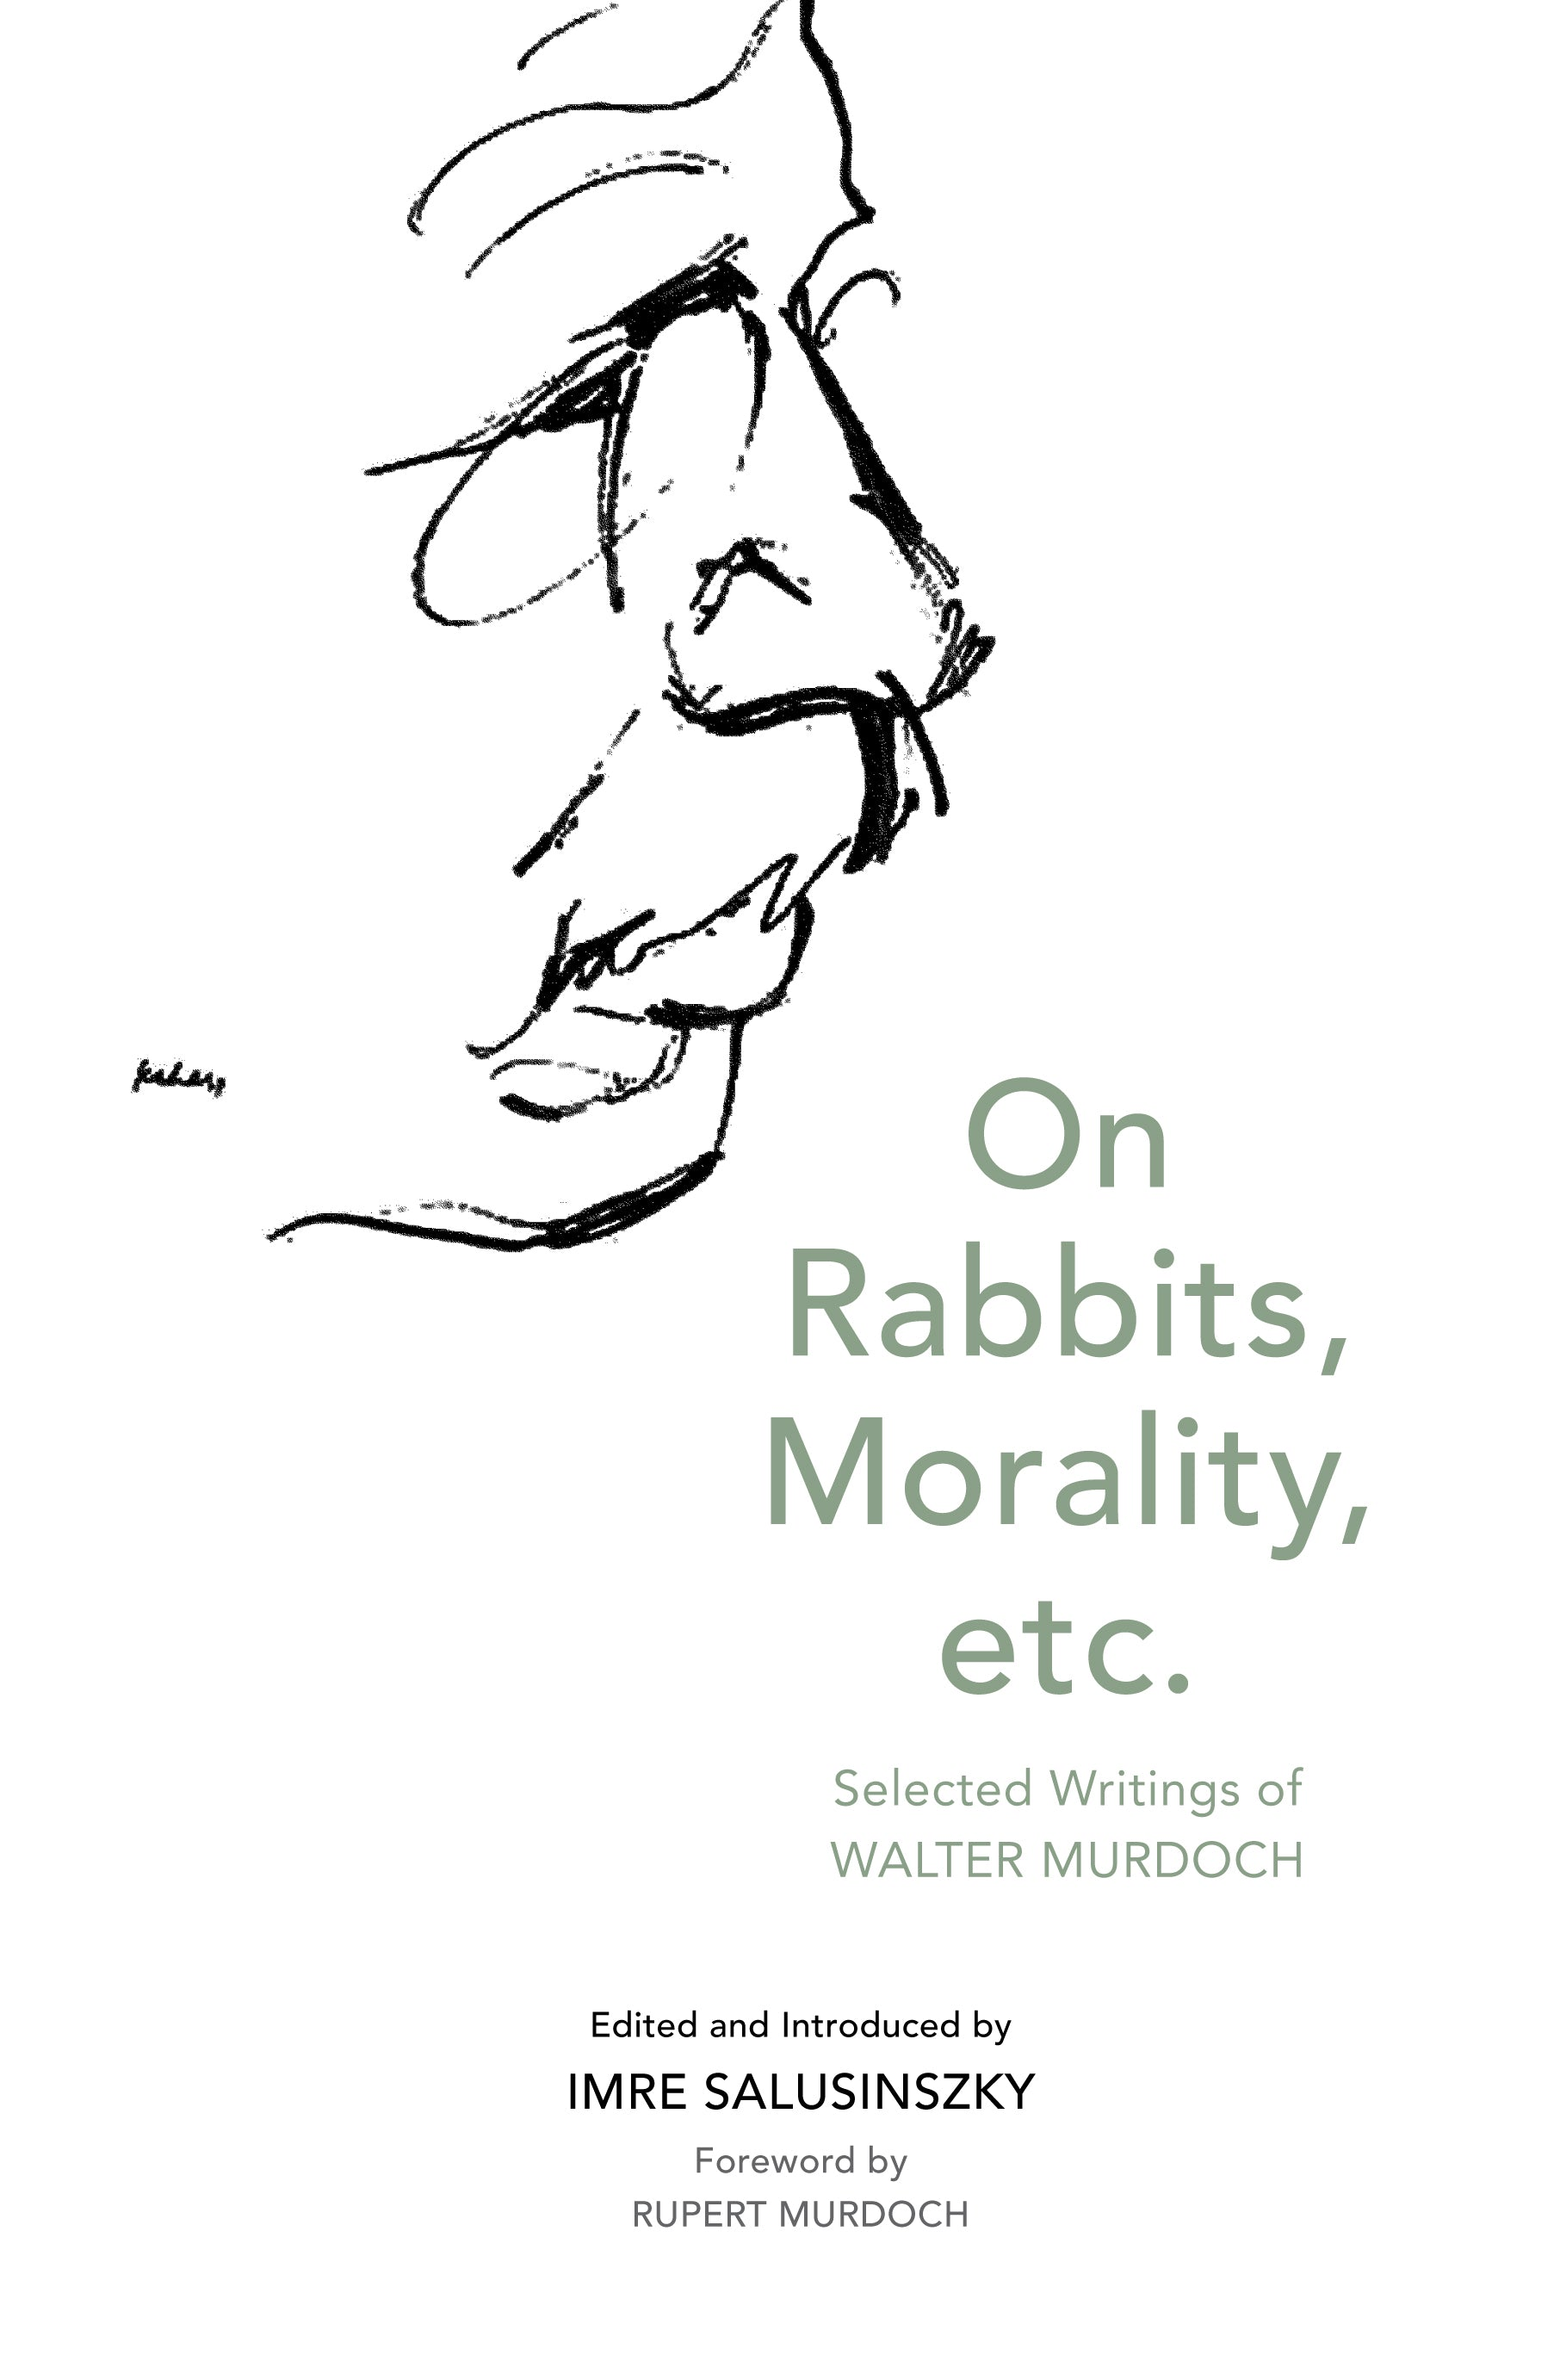 on rabbits morality etc selected writings of walter murdoch high res cover image